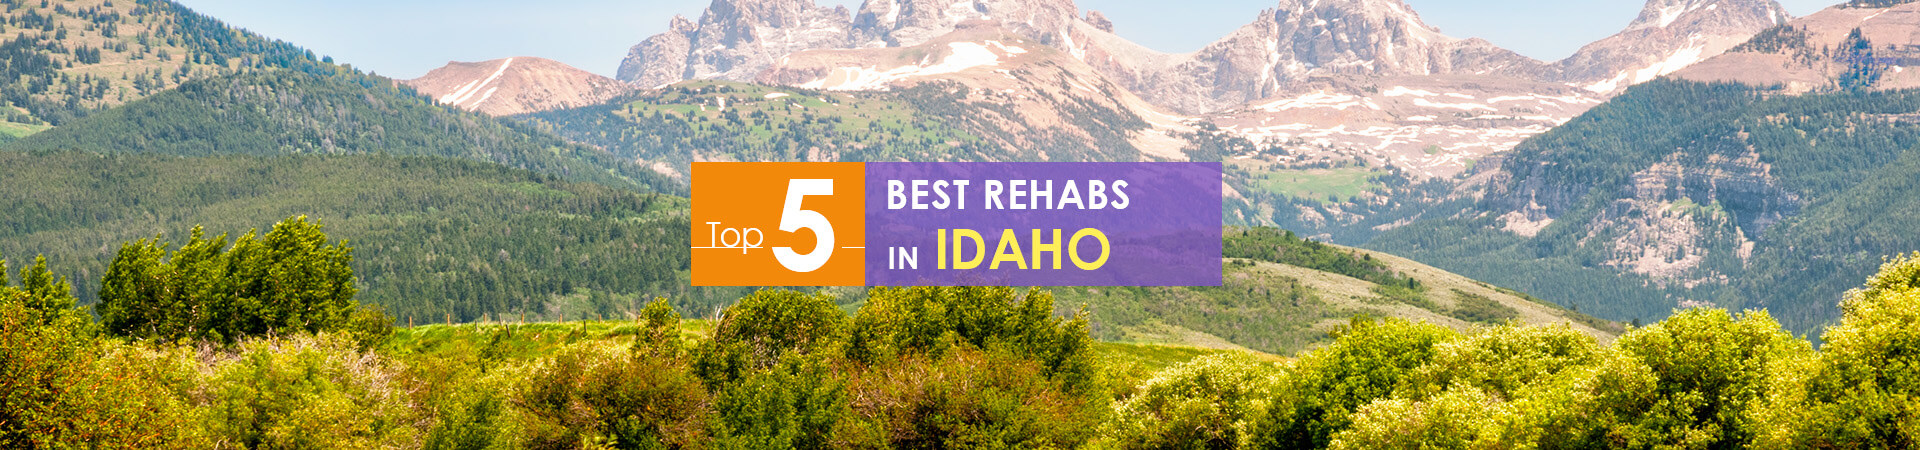 View on Idaho mountains and top 5 rehab caption